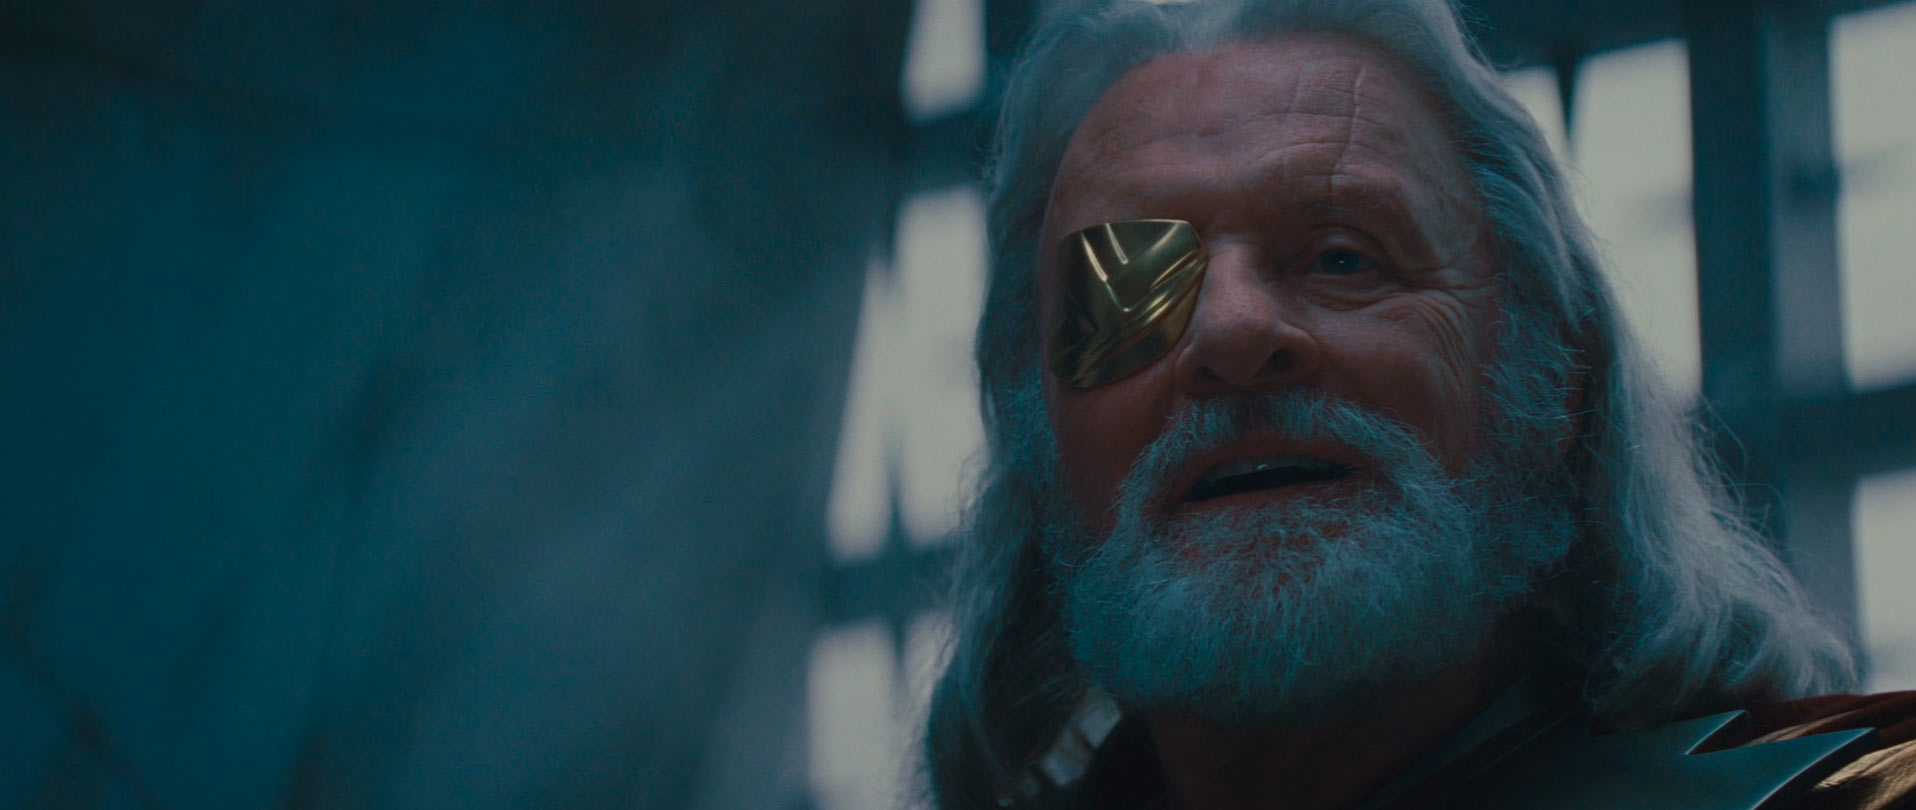 Cine Anthony Hopkins habla de Thor The Dark World ya ha